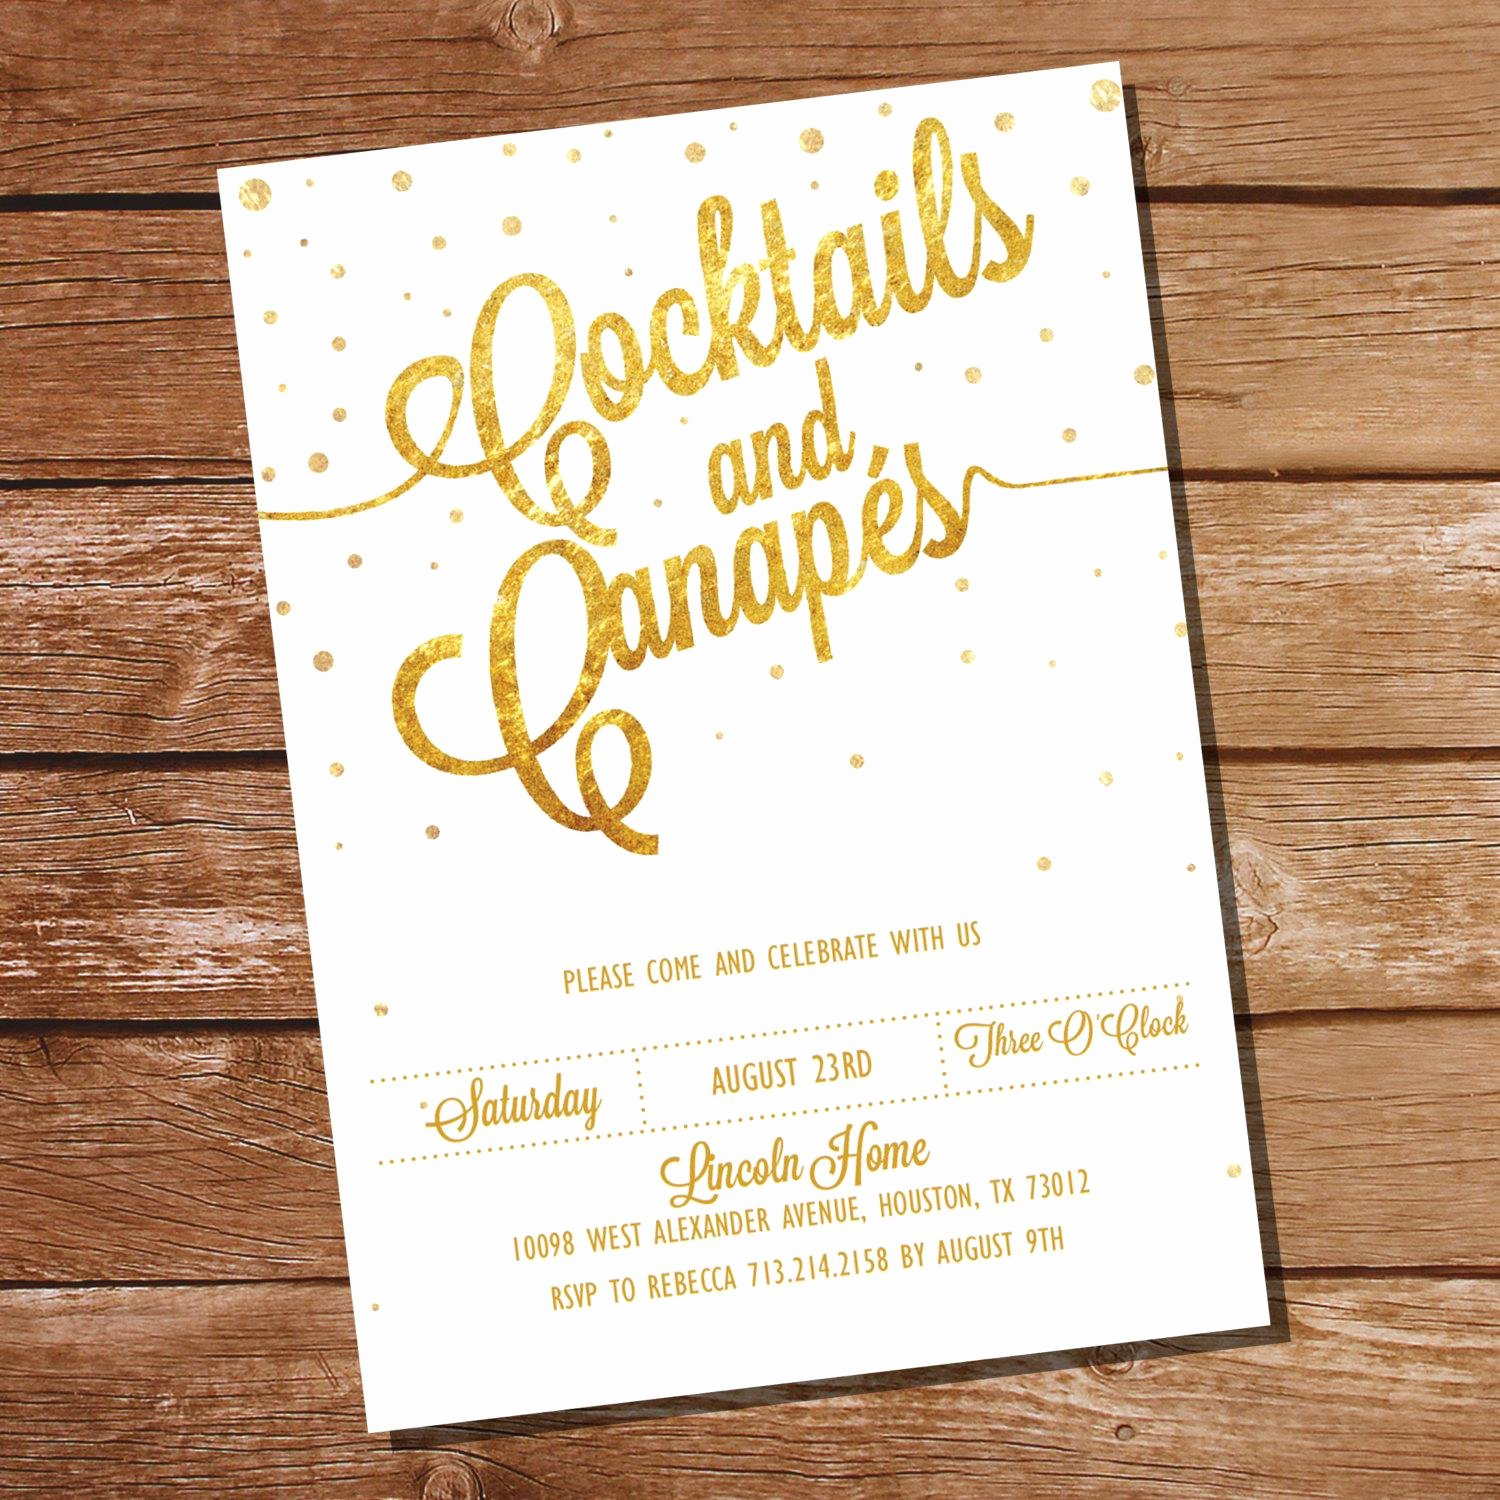 Cocktail Party Invitation Template Beautiful Cocktail Party Invitations